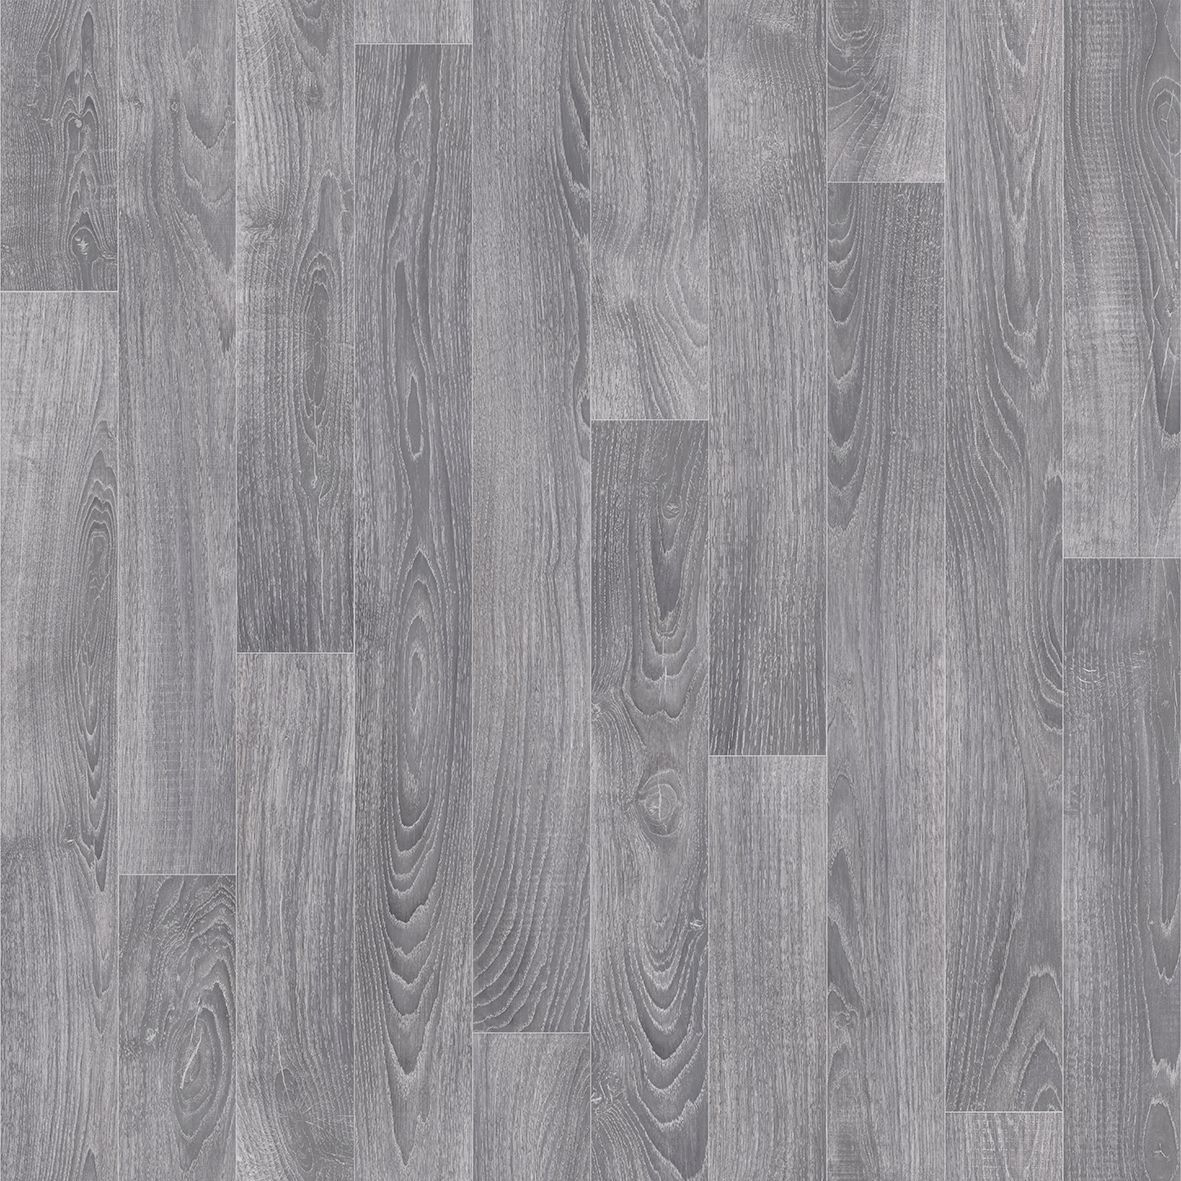 Grey Oak Effect Vinyl Flooring 4 M 178 Departments Diy At B Amp Q